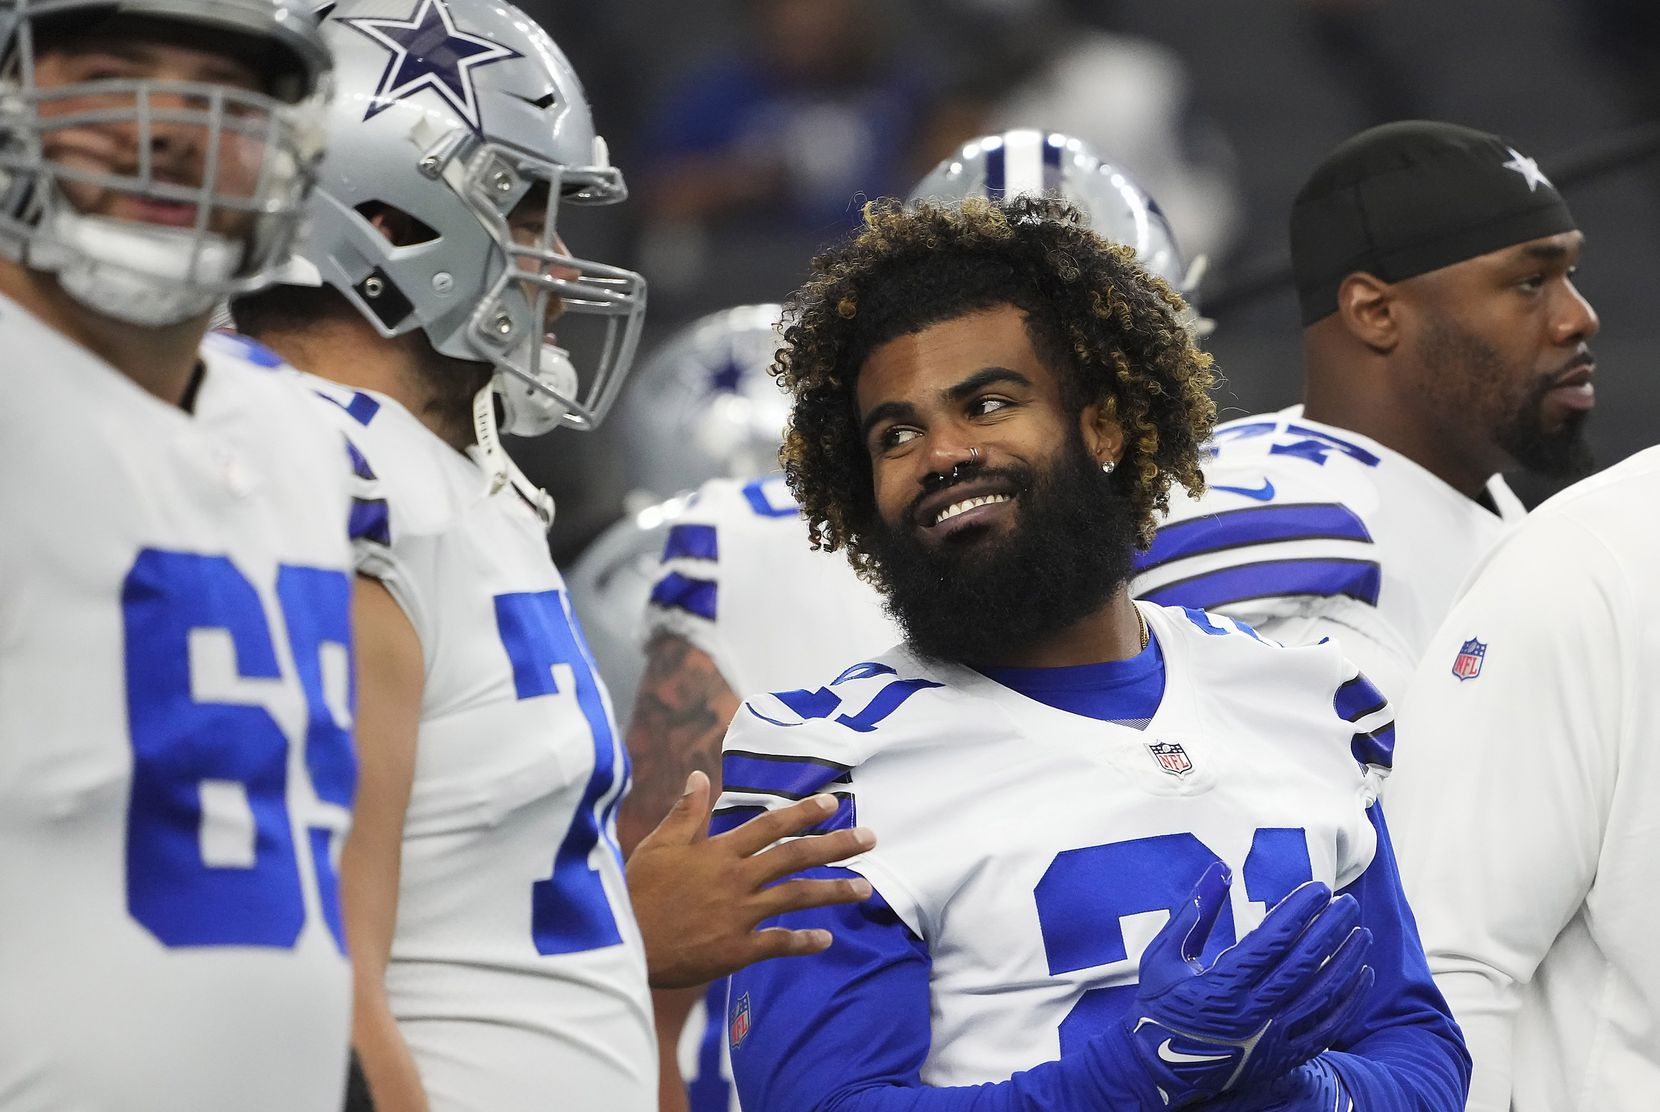 Dallas Cowboys running back Ezekiel Elliott (21) laughs with offensive guard Zack Martin (70) before a preseason NFL football game against the Jacksonville Jaguars at AT&T Stadium on Sunday, Aug. 29, 2021, in Arlington.